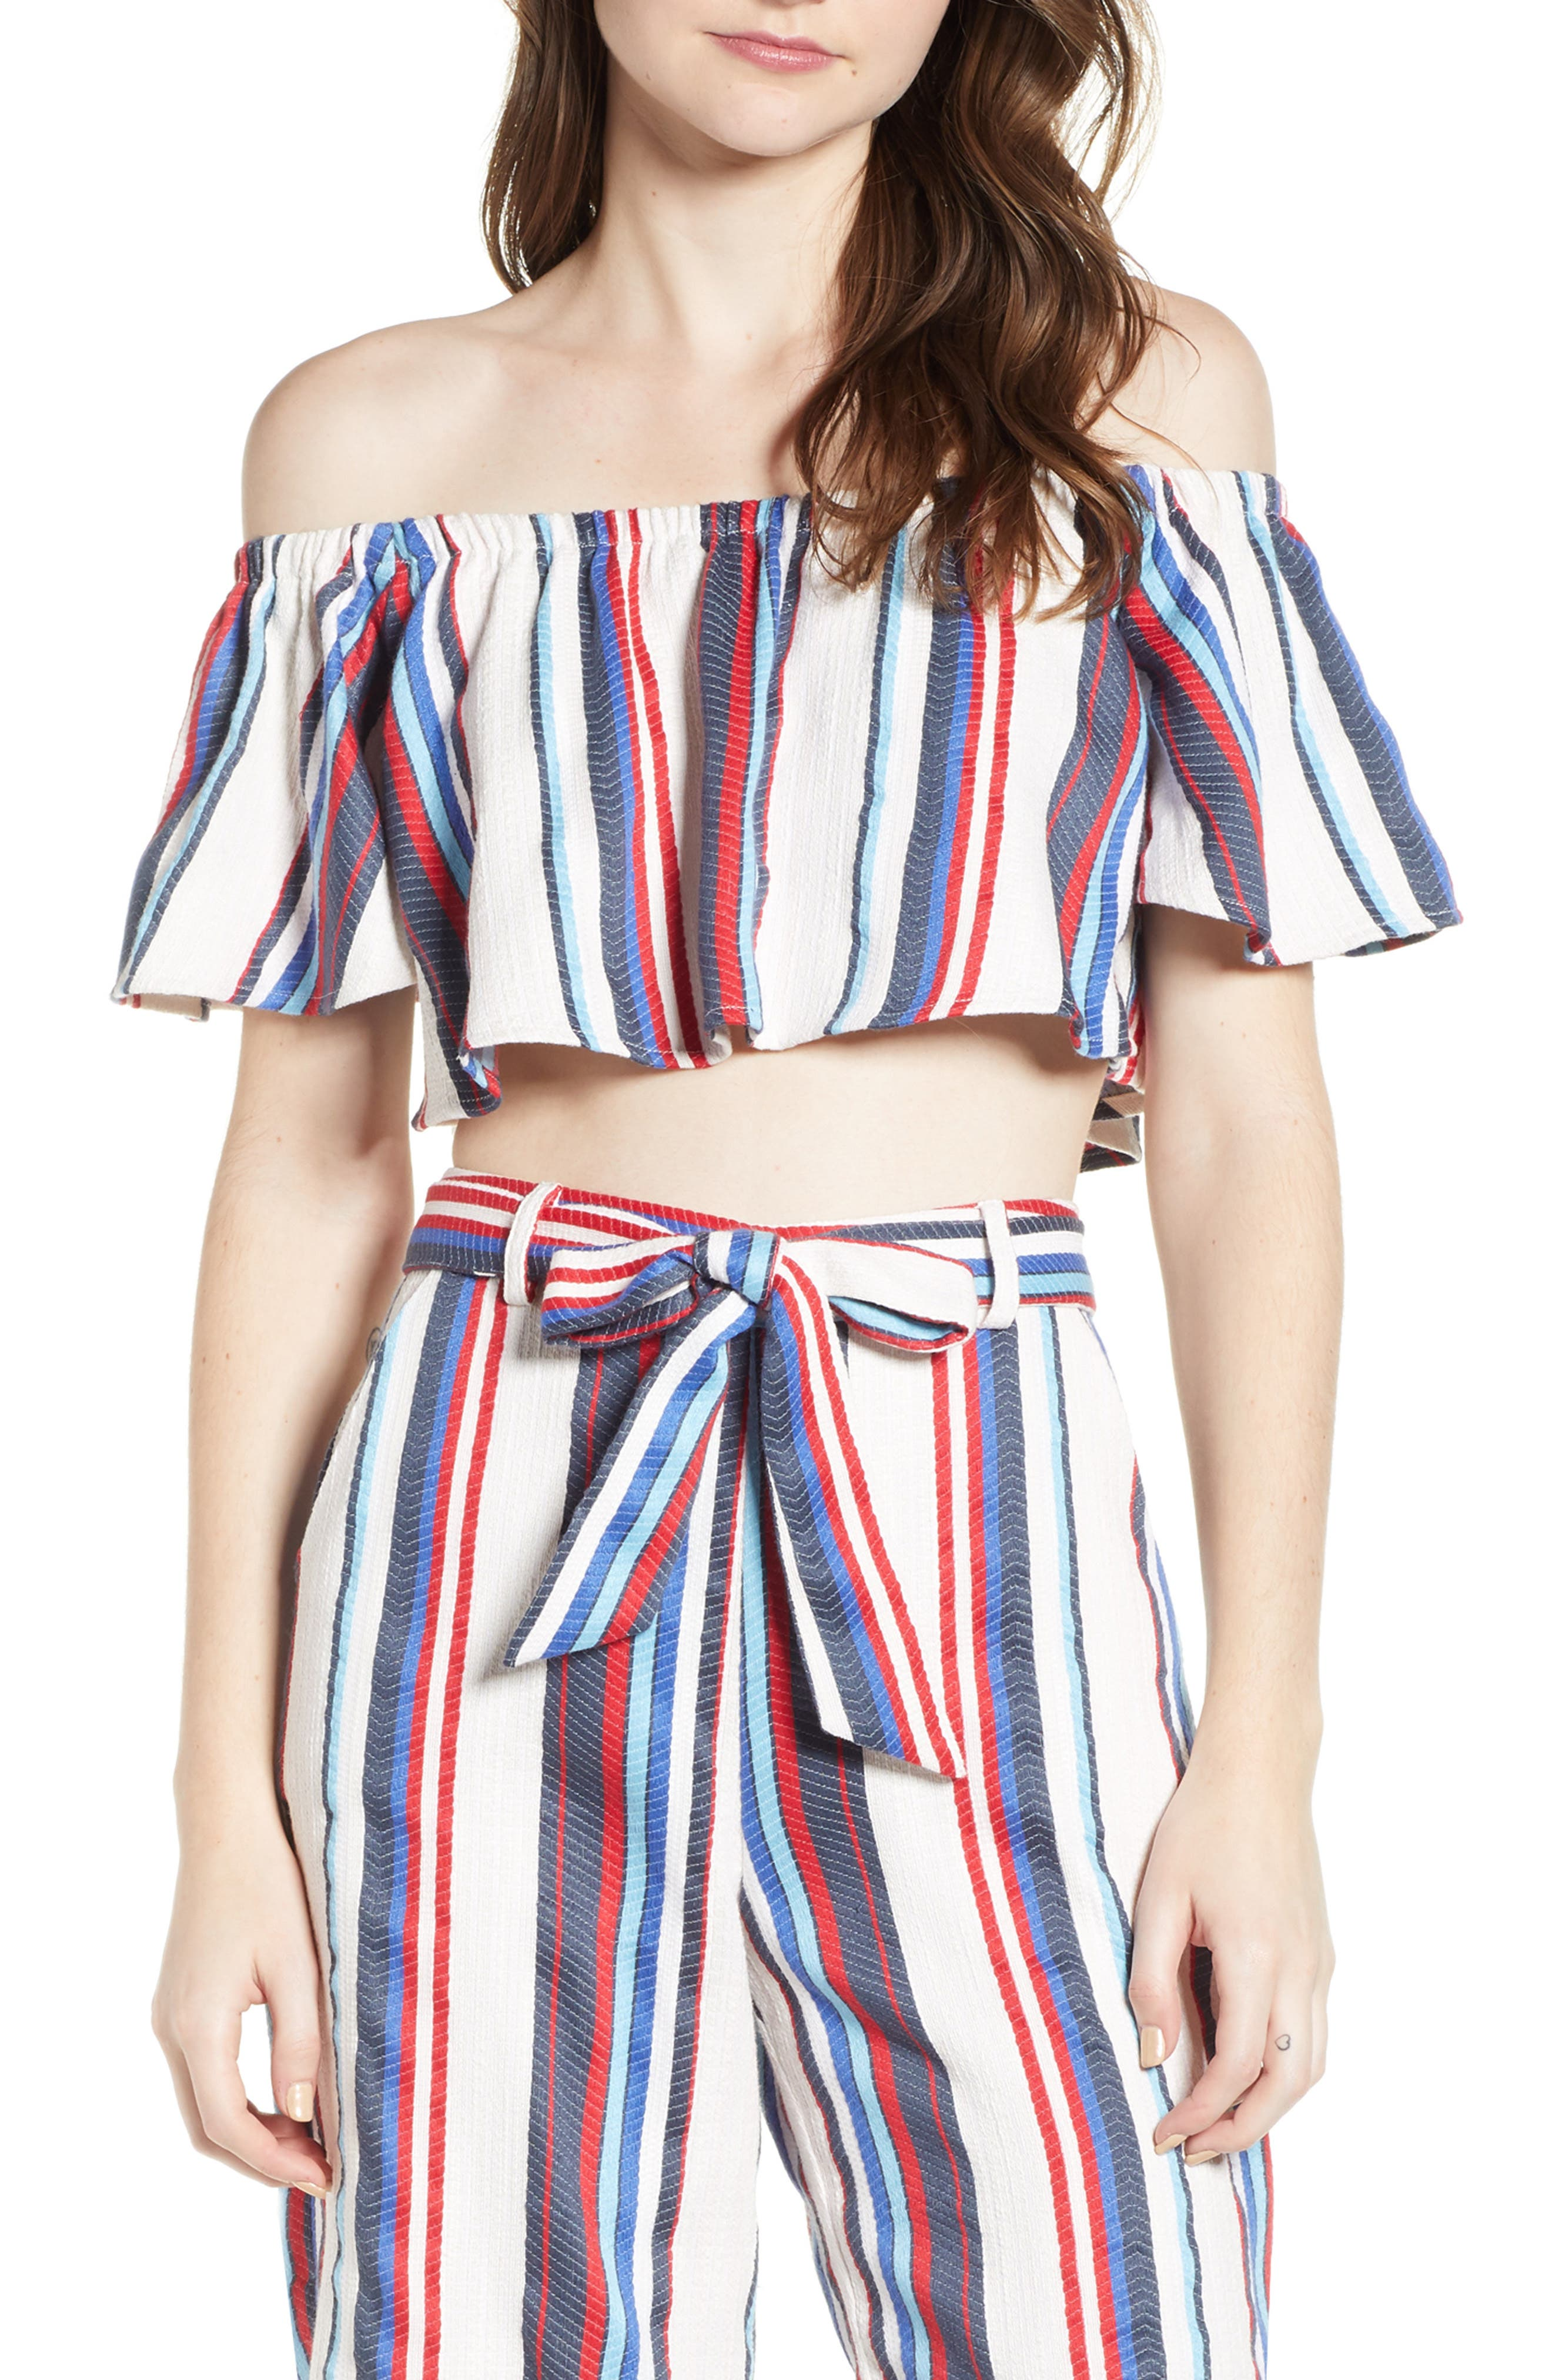 Azul Stripe Off the Shoulder Crop Top,                             Main thumbnail 1, color,                             Blue/ Red Stripe